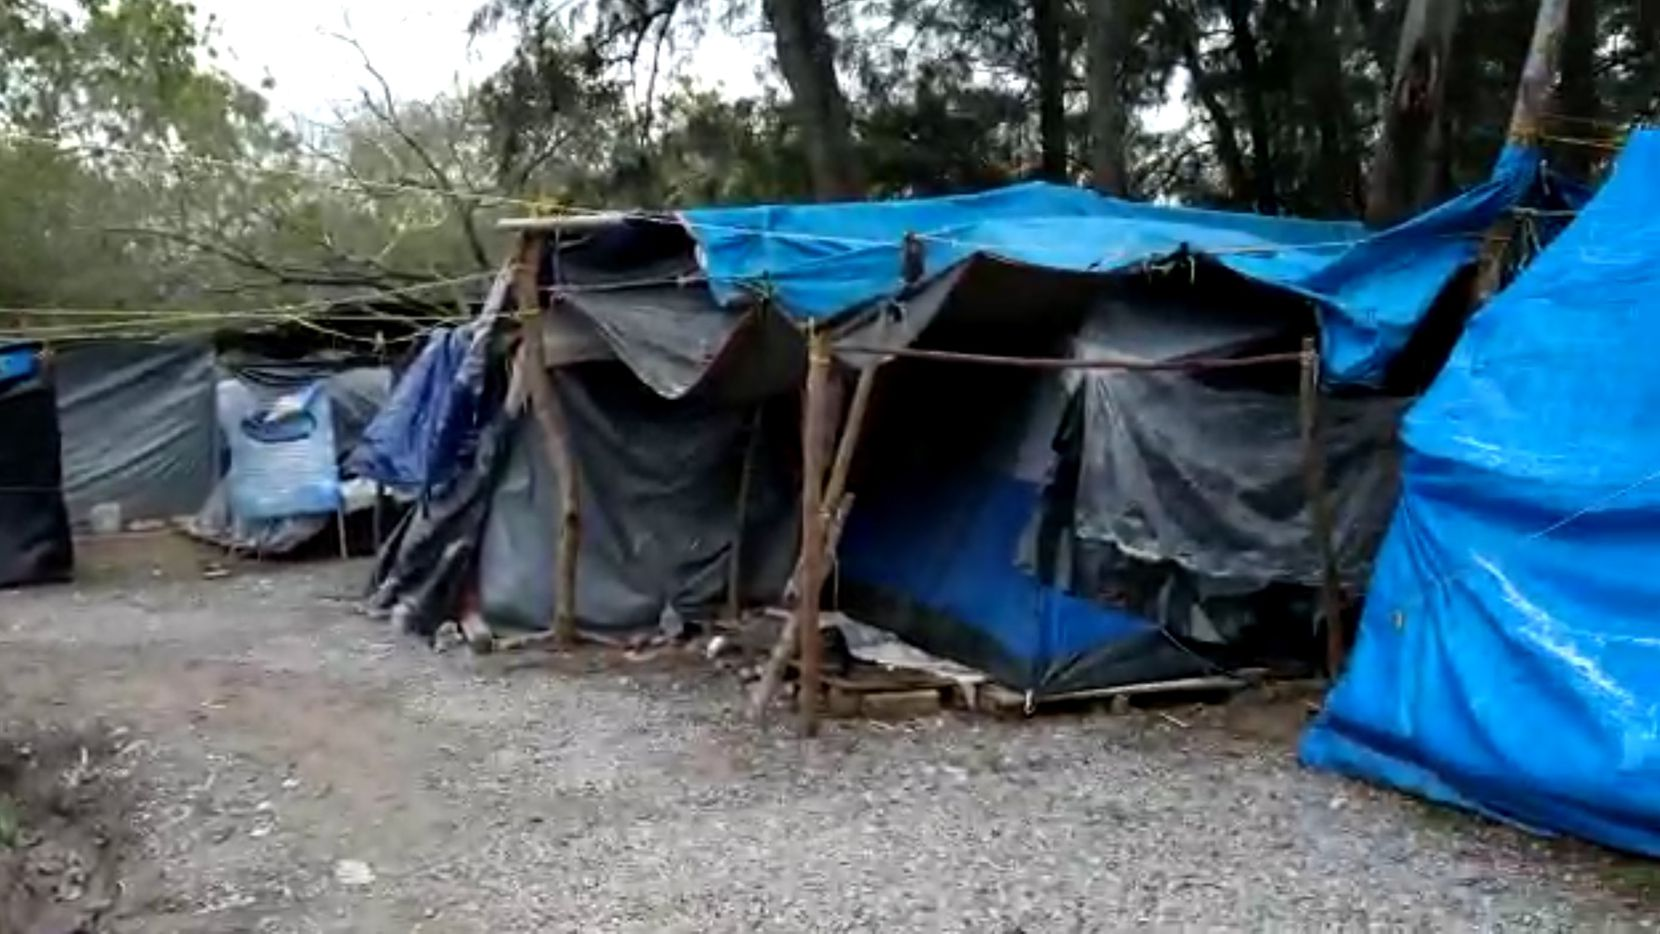 Scenes from the Matamoros camp of asylum-seekers shows rough conditions for those inside tents covered with tarps on Monday, Feb 15, 2021. Photos taken by asylum-seeker Rolando, who wanted his surname kept private.